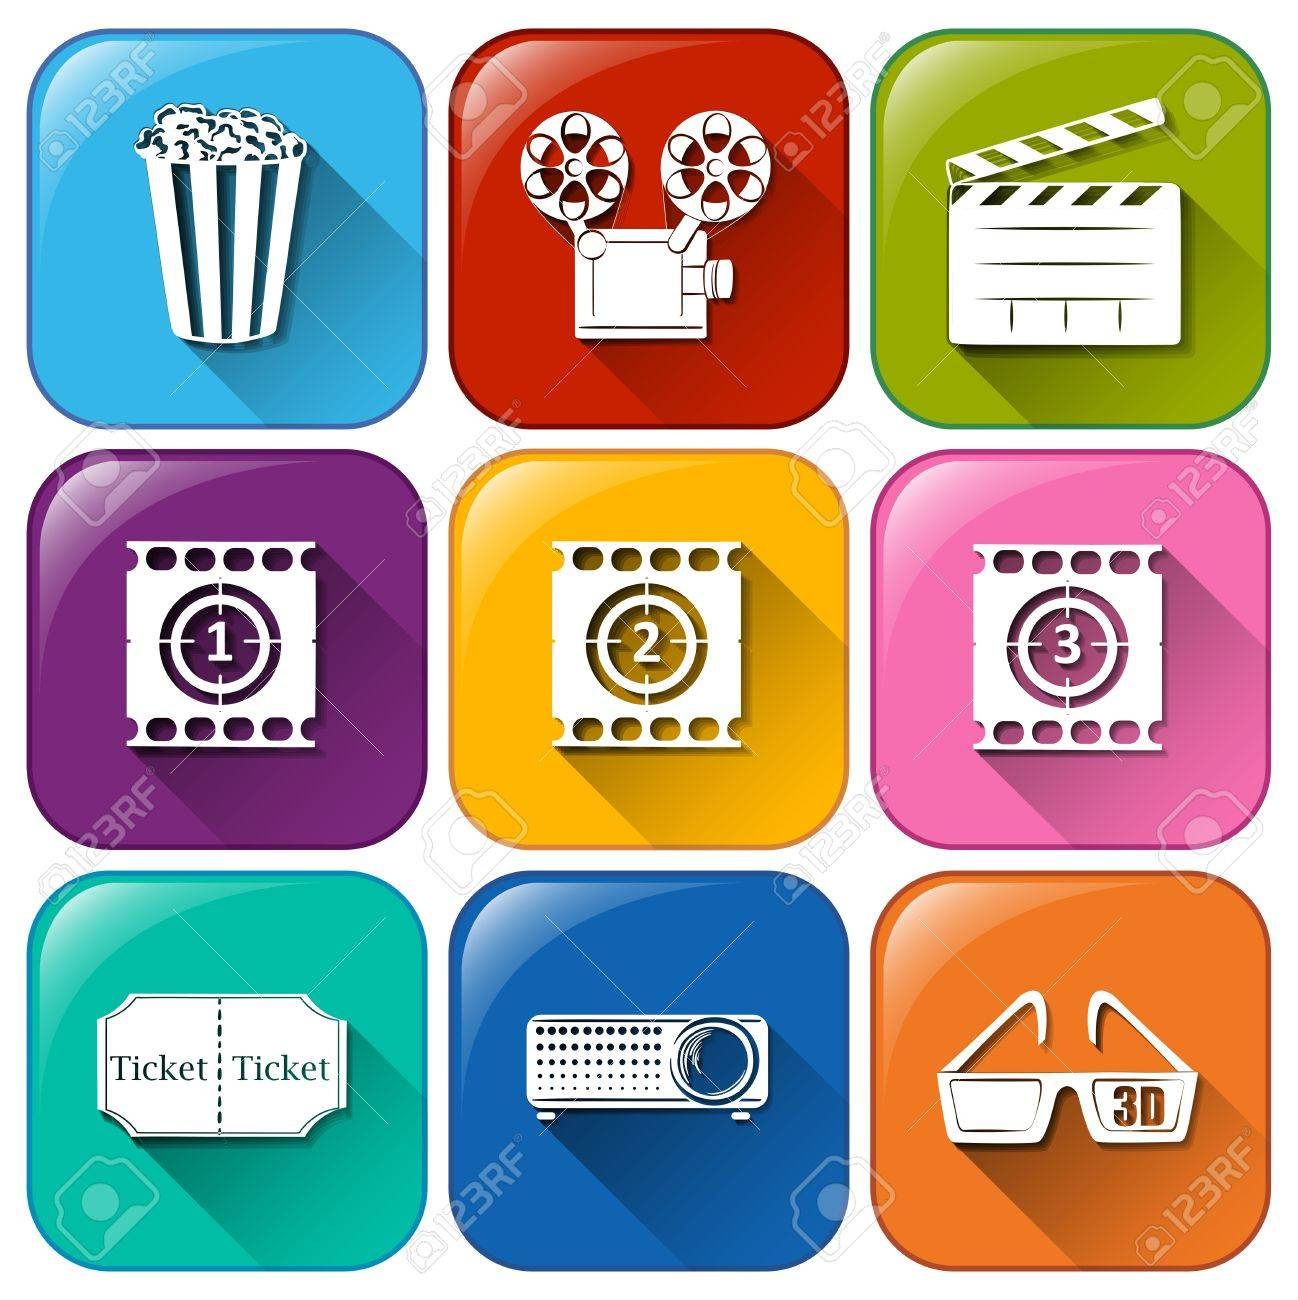 Illustration of the movie marathon icons on a white background Stock Vector - 30260700